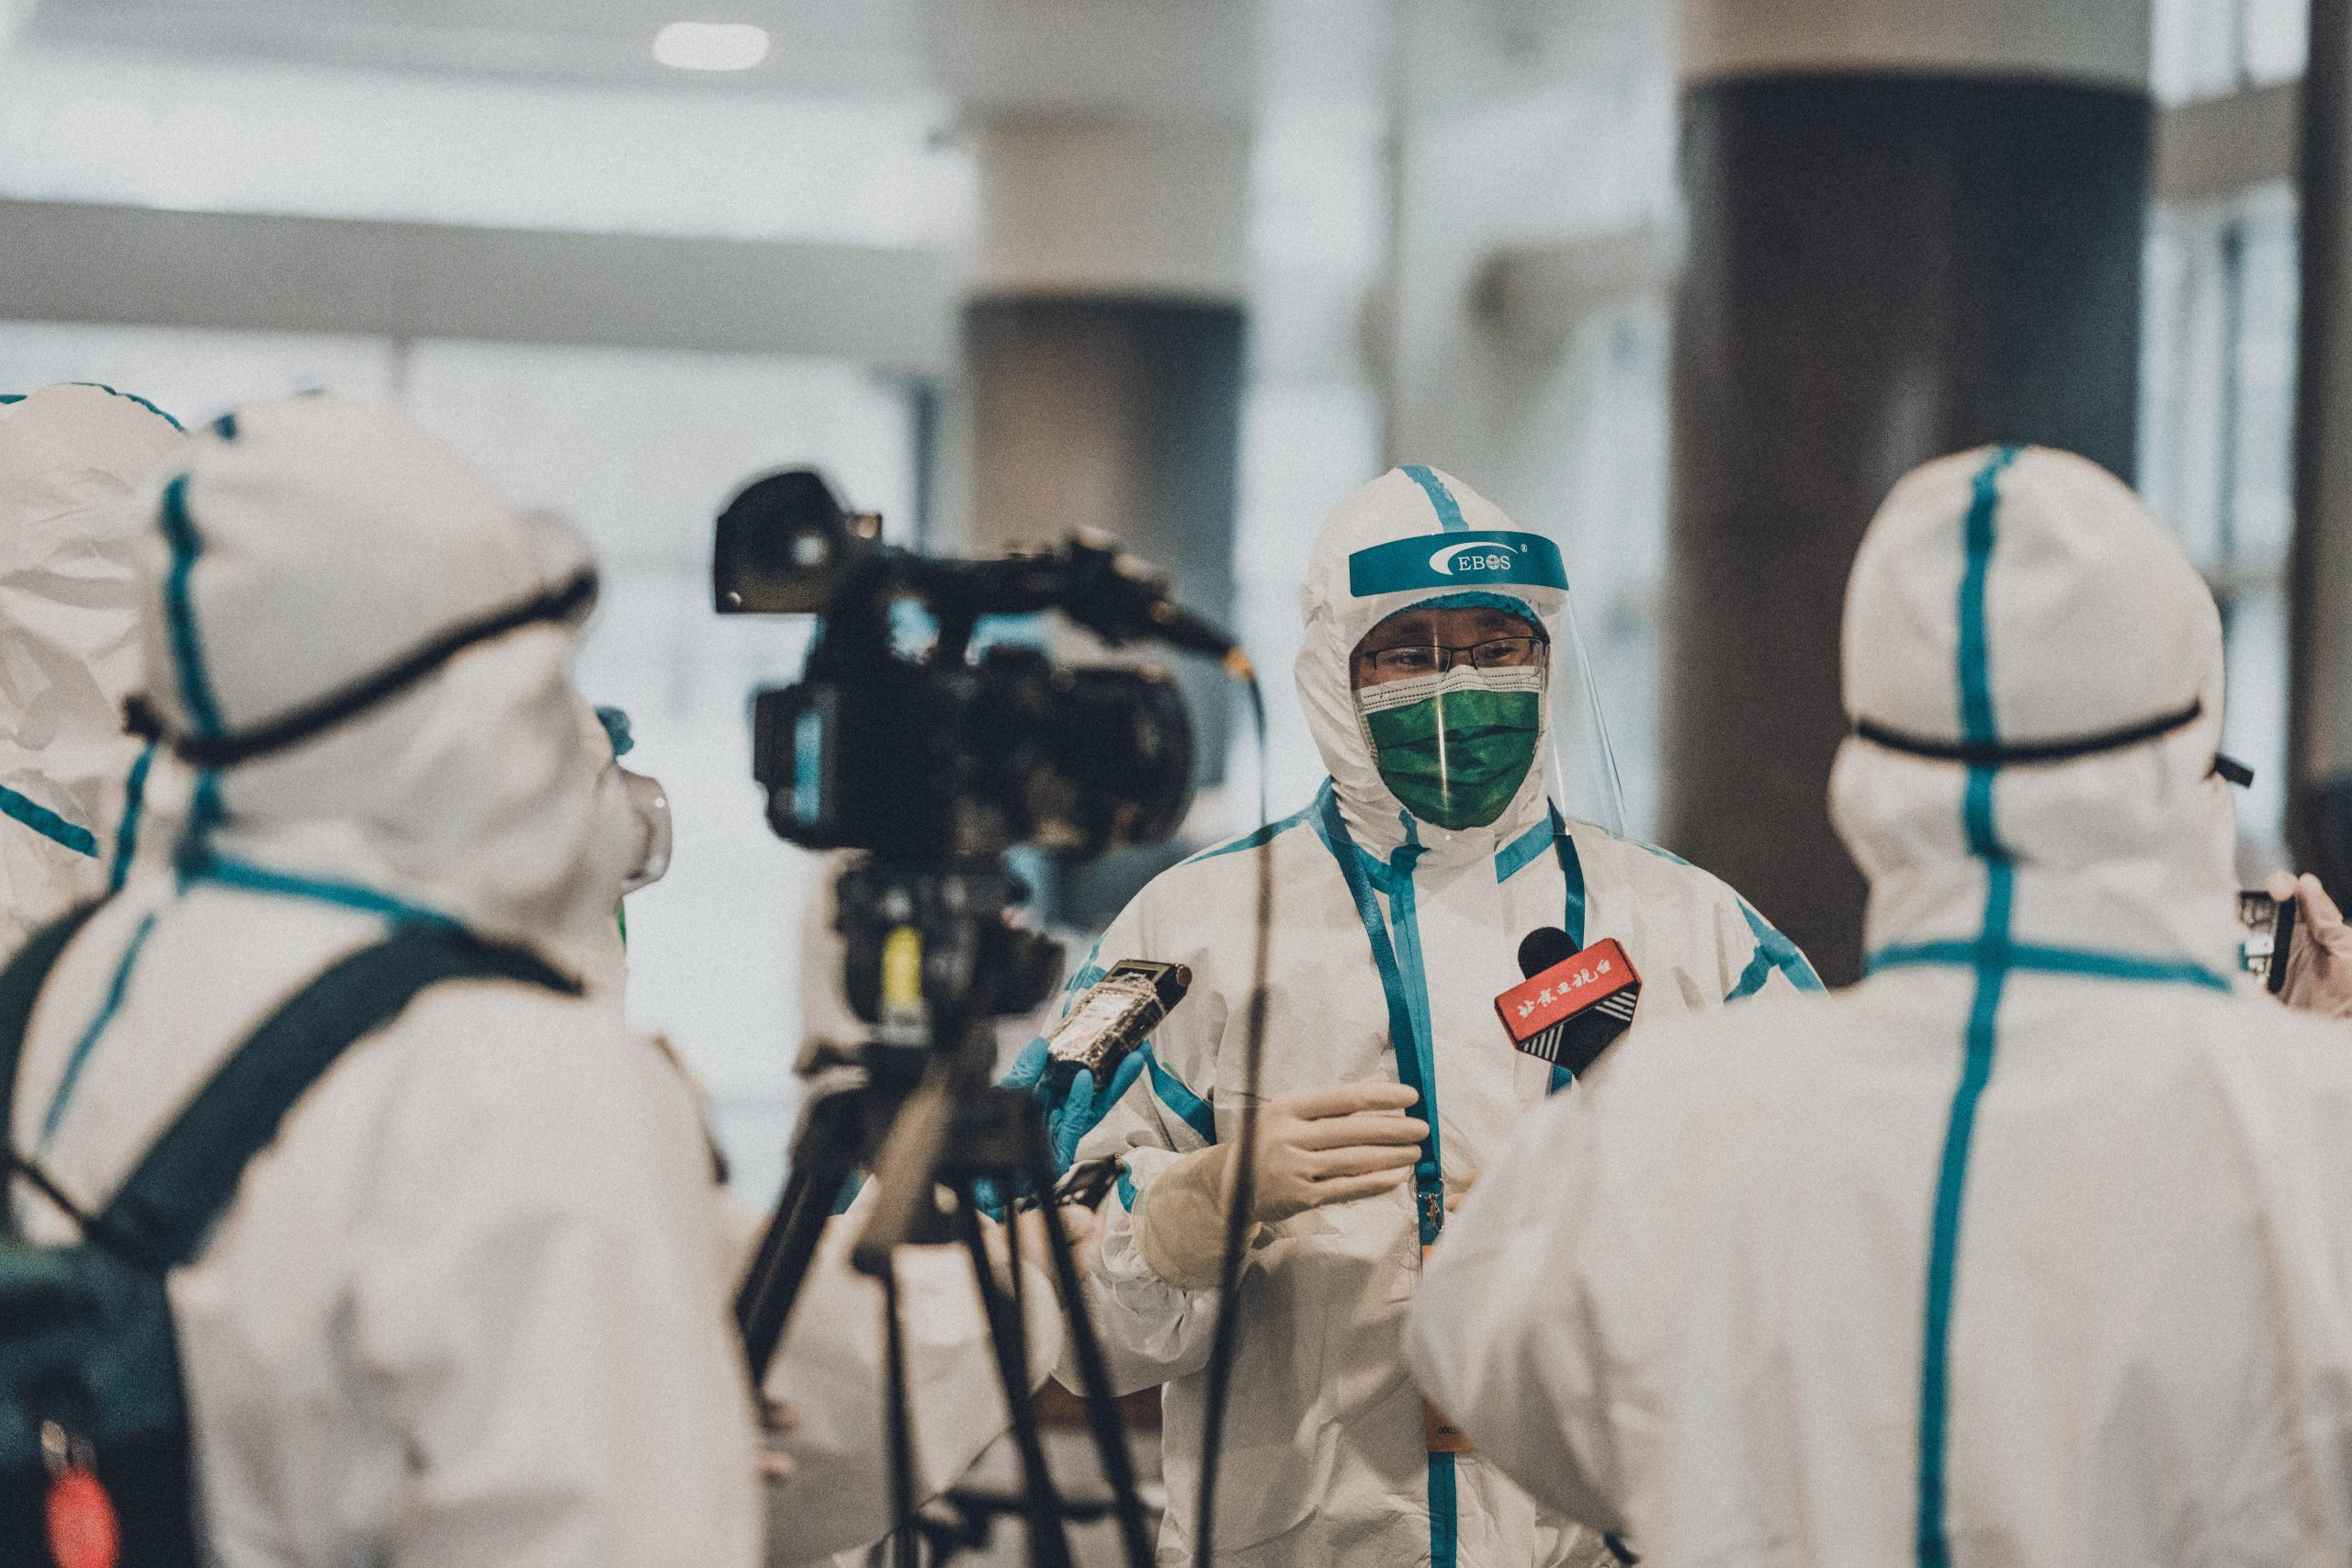 People in PPE being interviewed on camera